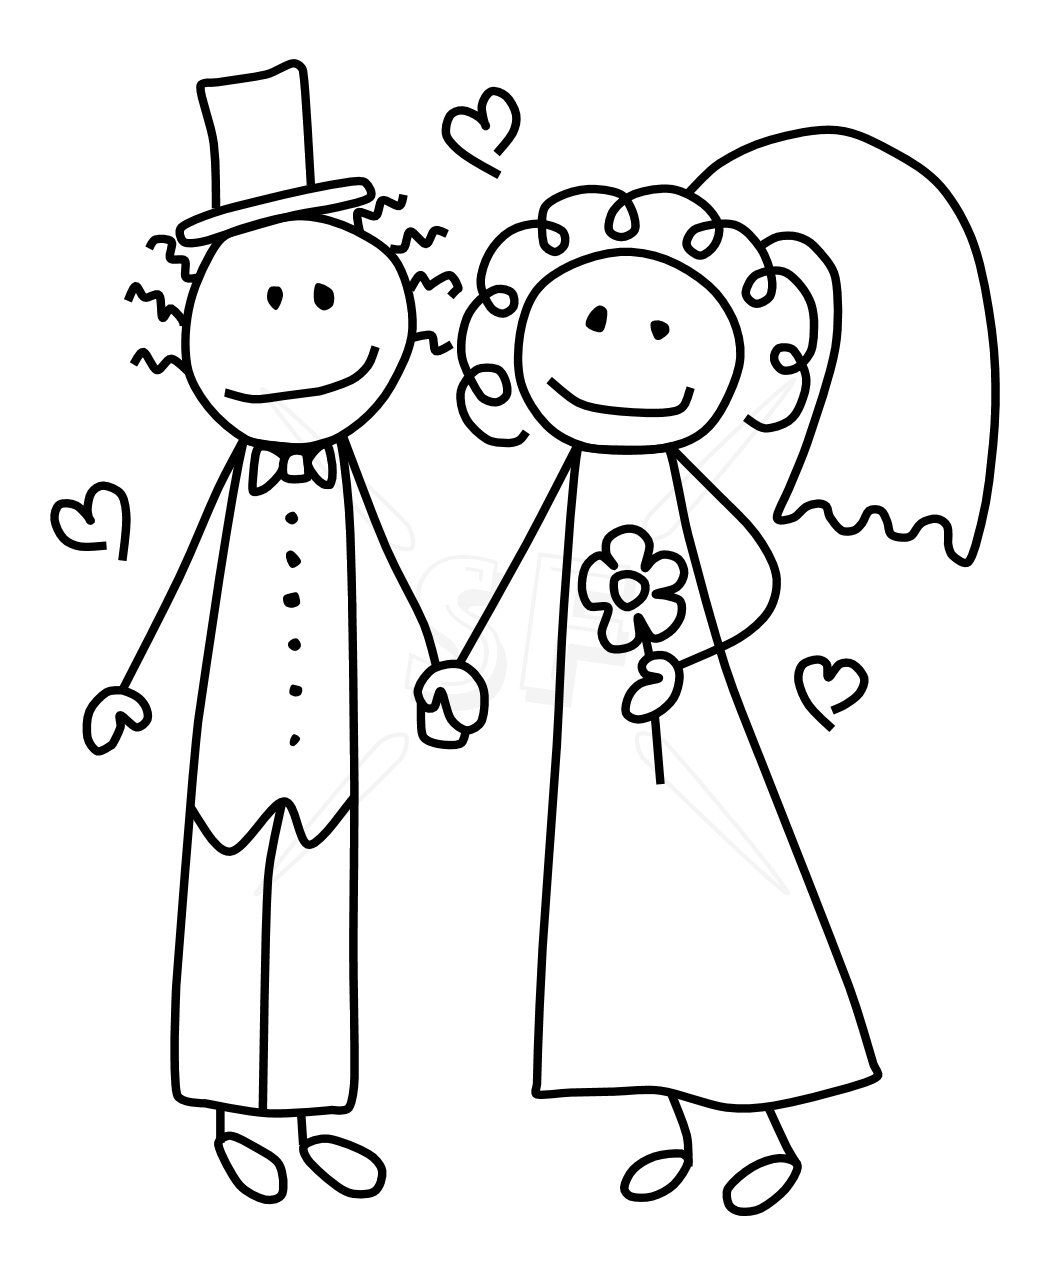 pin by donna boyer on embroidery stitching pinterest wedding